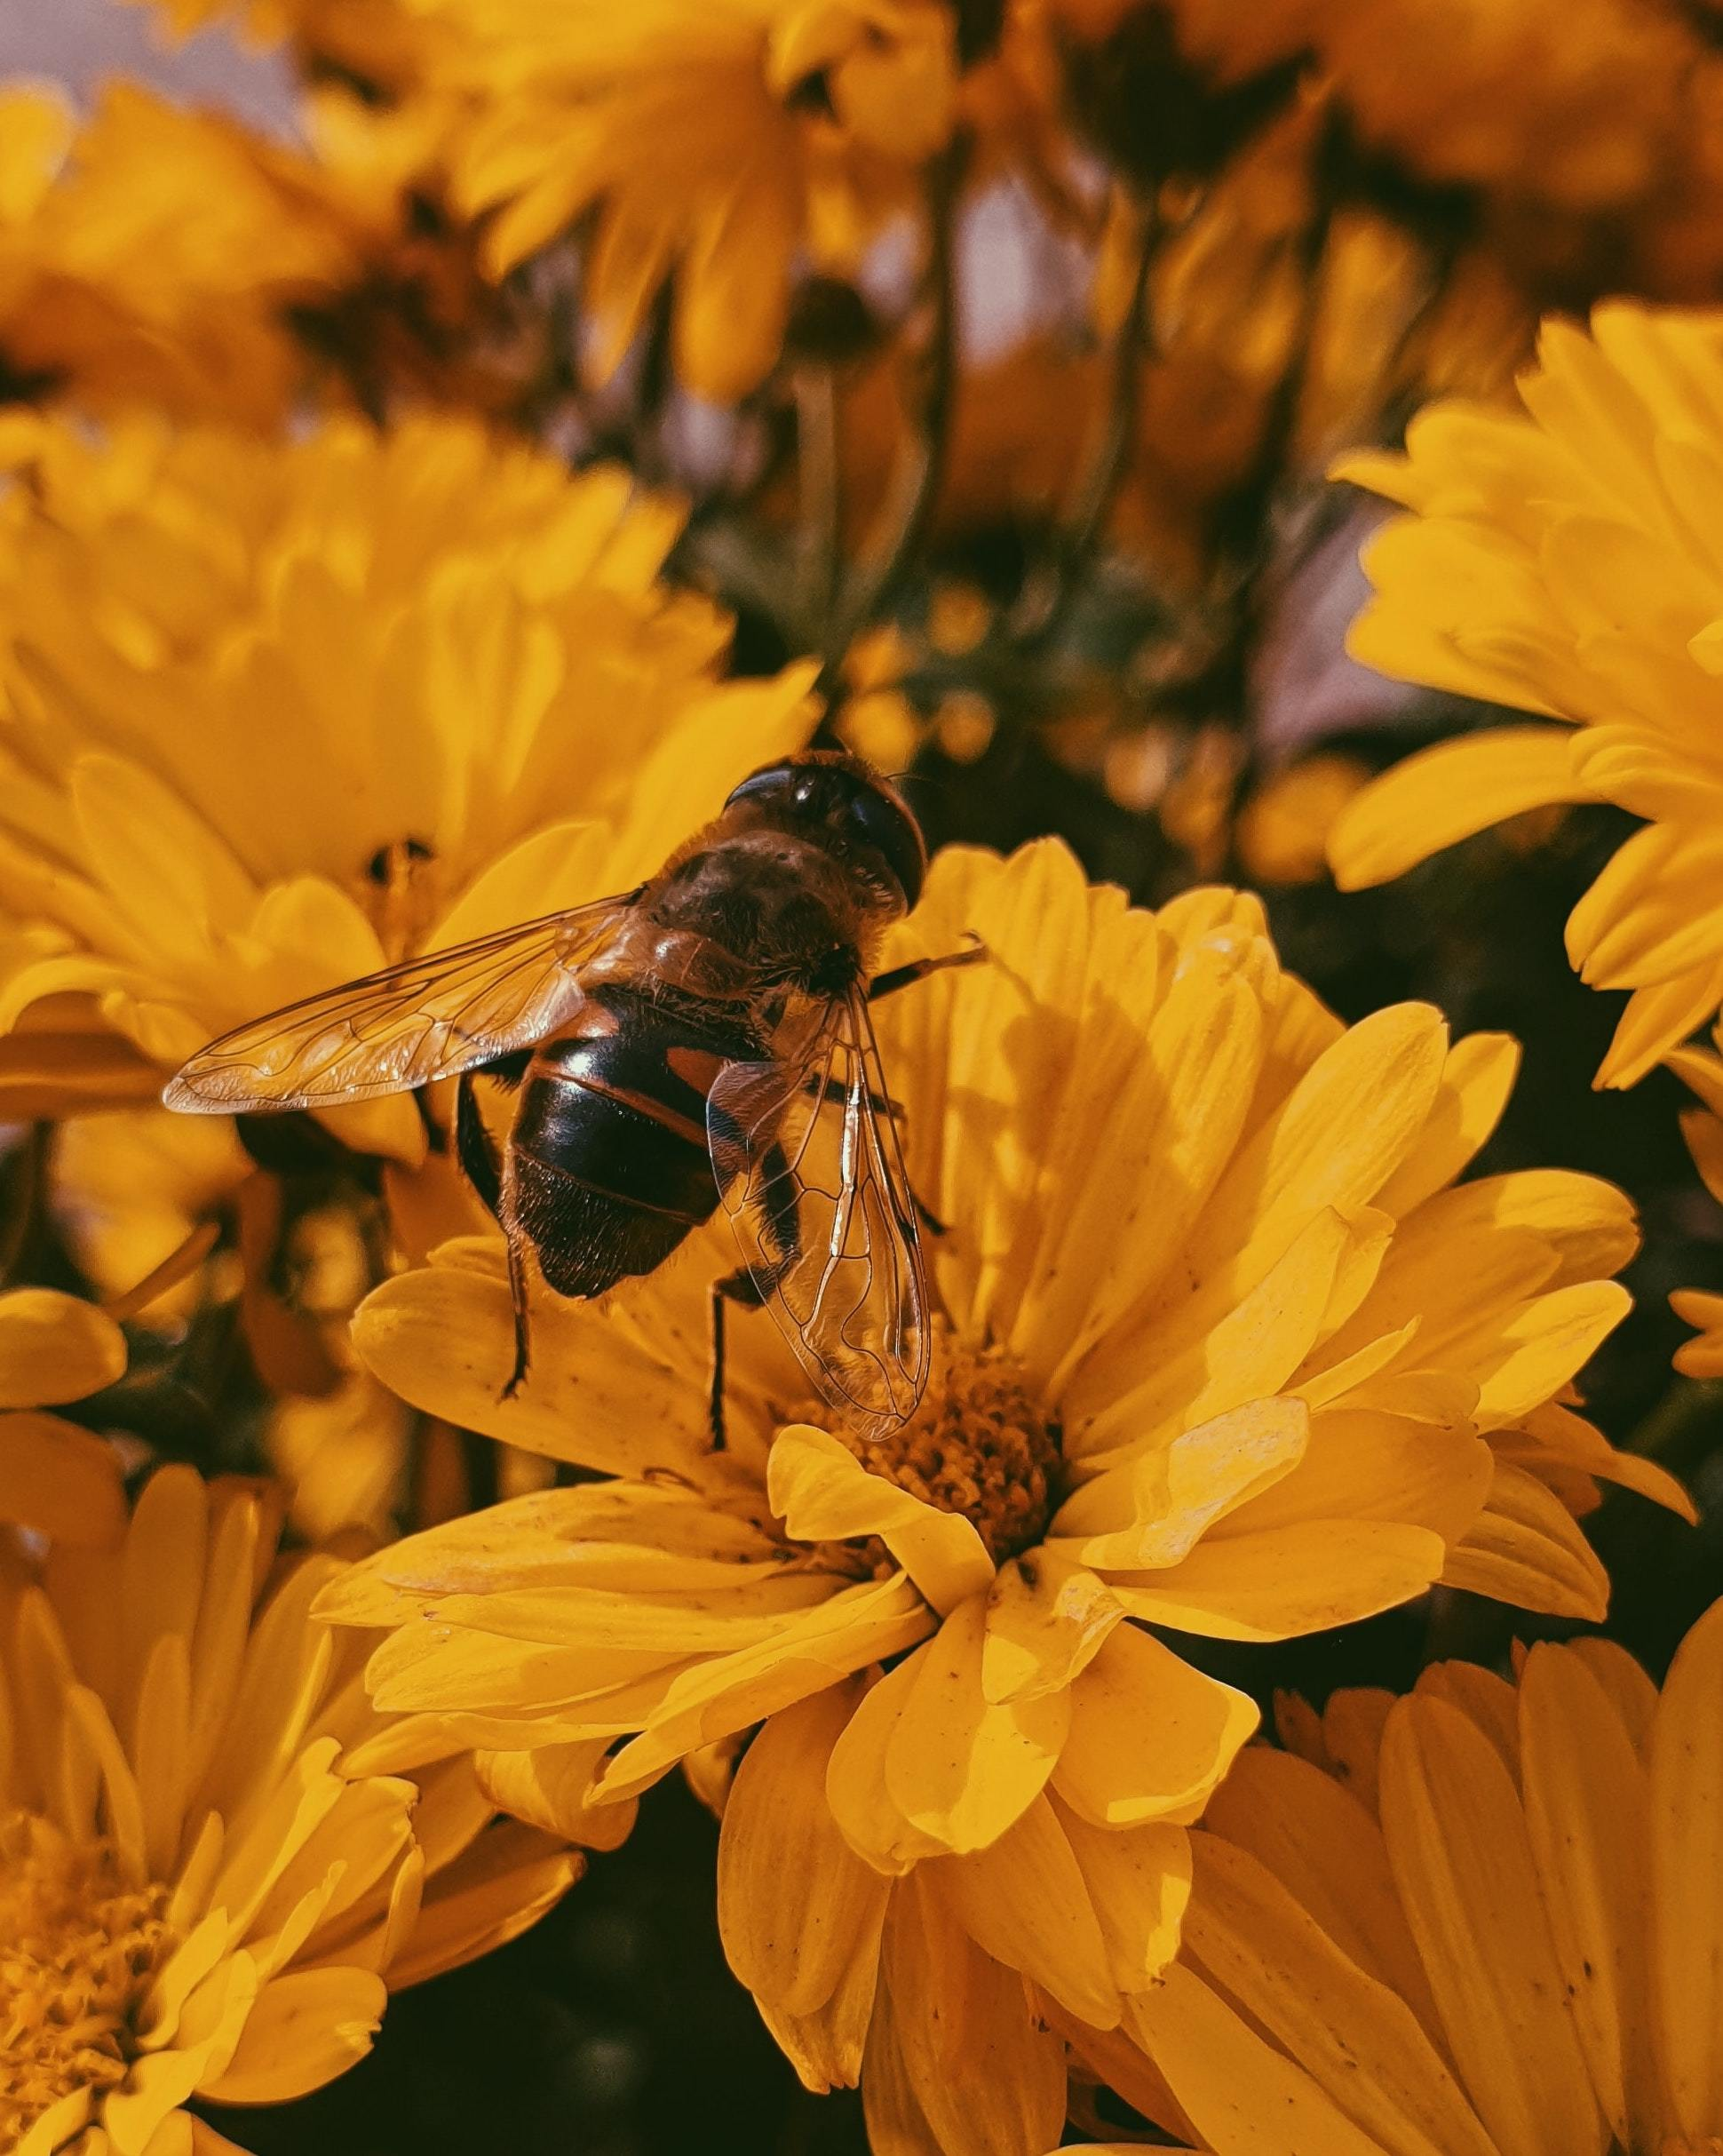 Can Beekeeping be Sustainable?